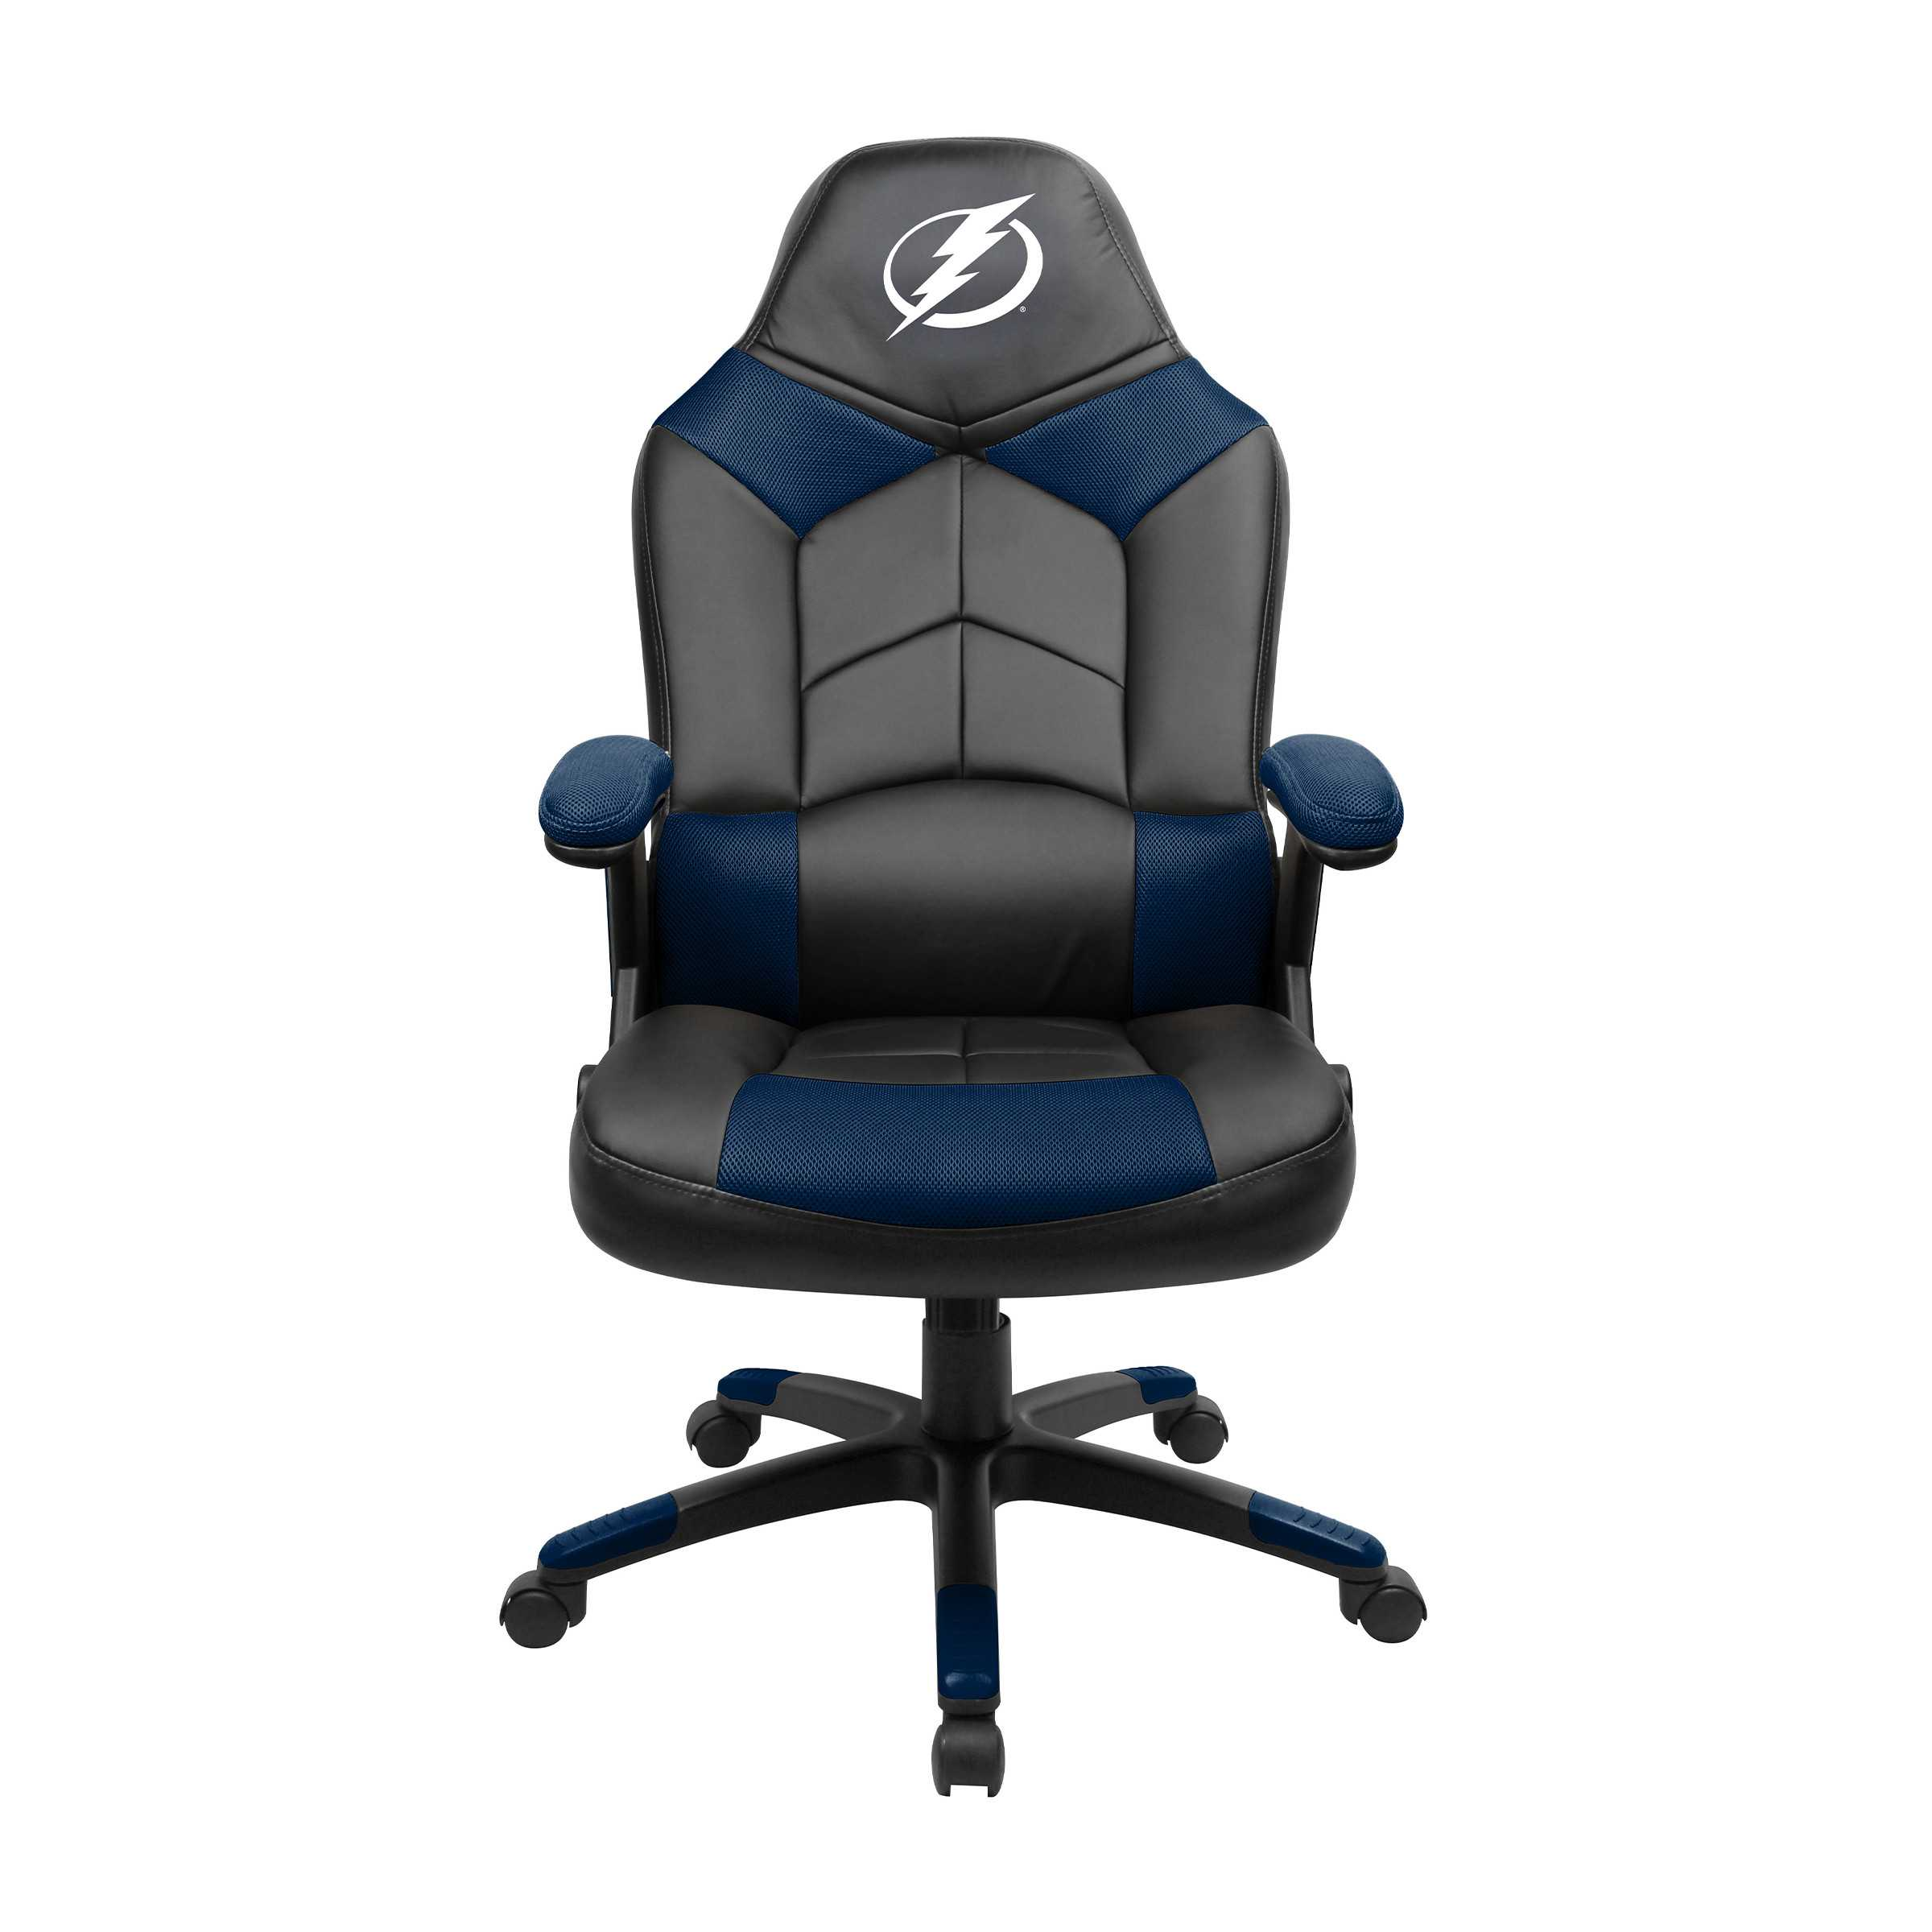 TAMPA BAY LIGHTNING OVERSIZED GAME CHAIR